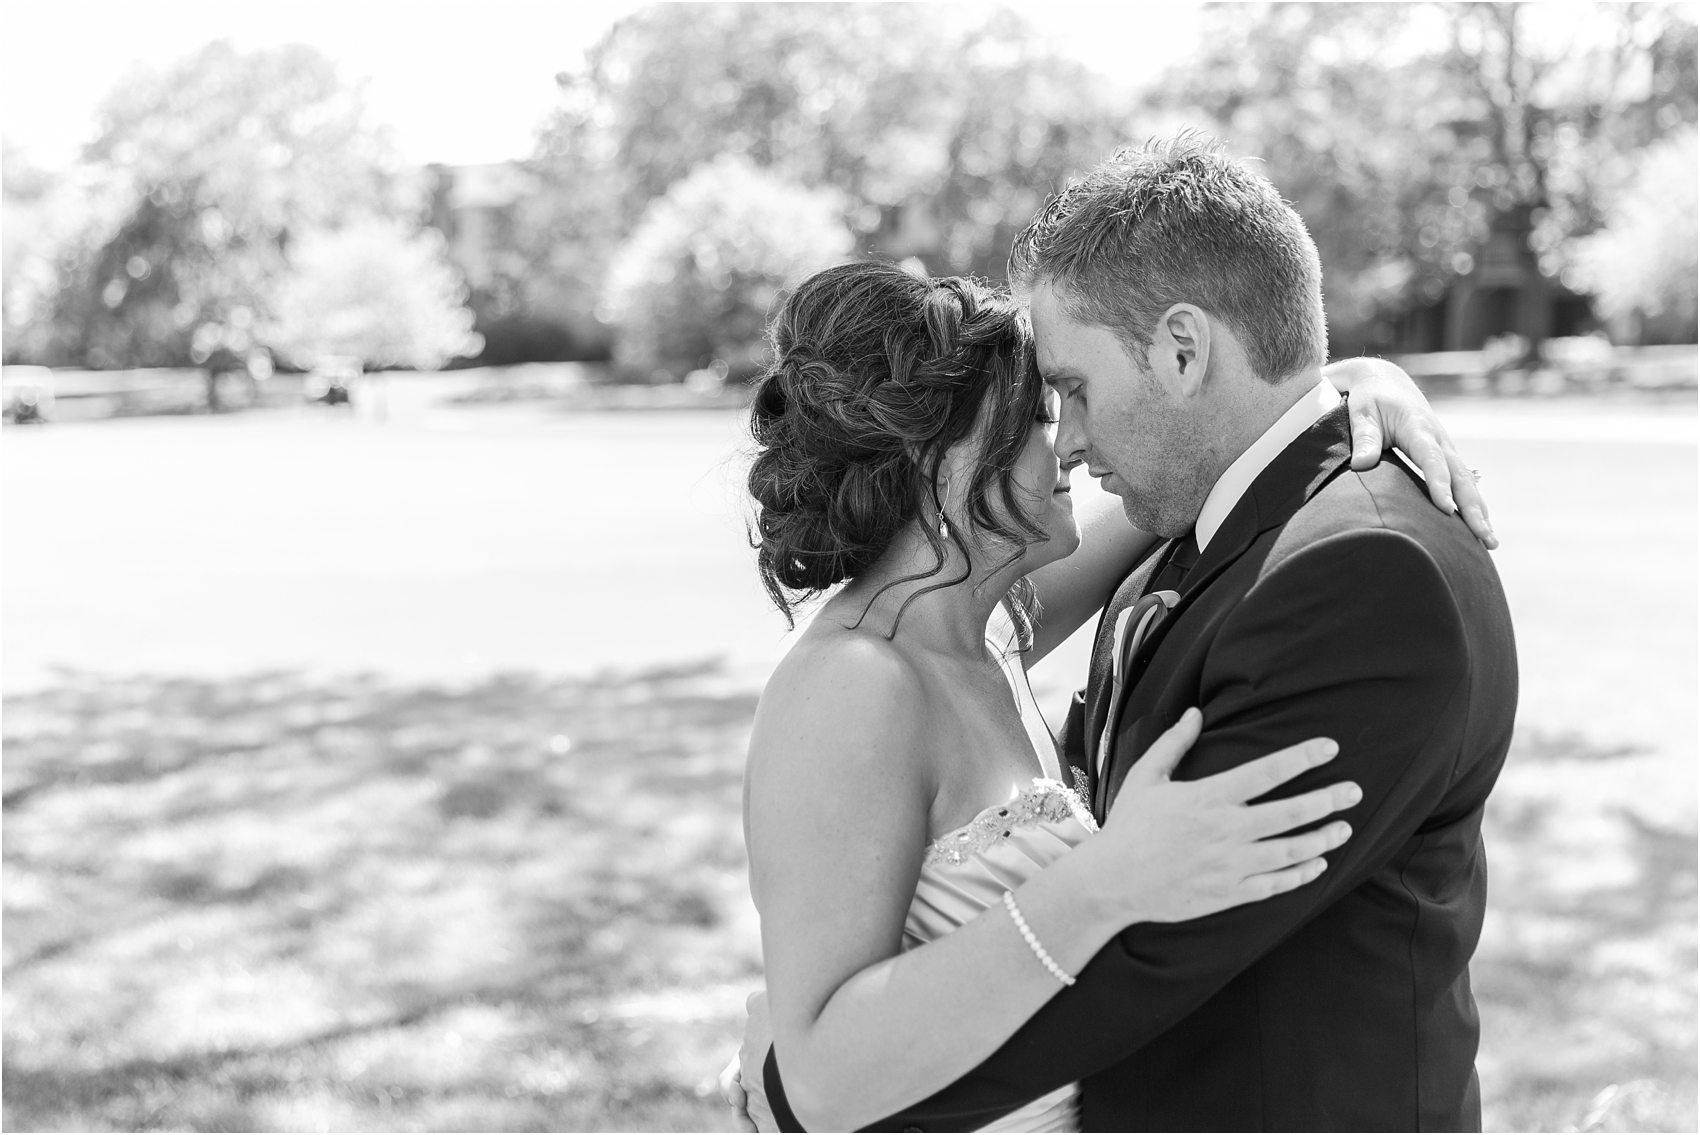 classic-wedding-photos-at-great-oaks-country-club-in-rochester-hills-mi-by-courtney-carolyn-photography_0059.jpg